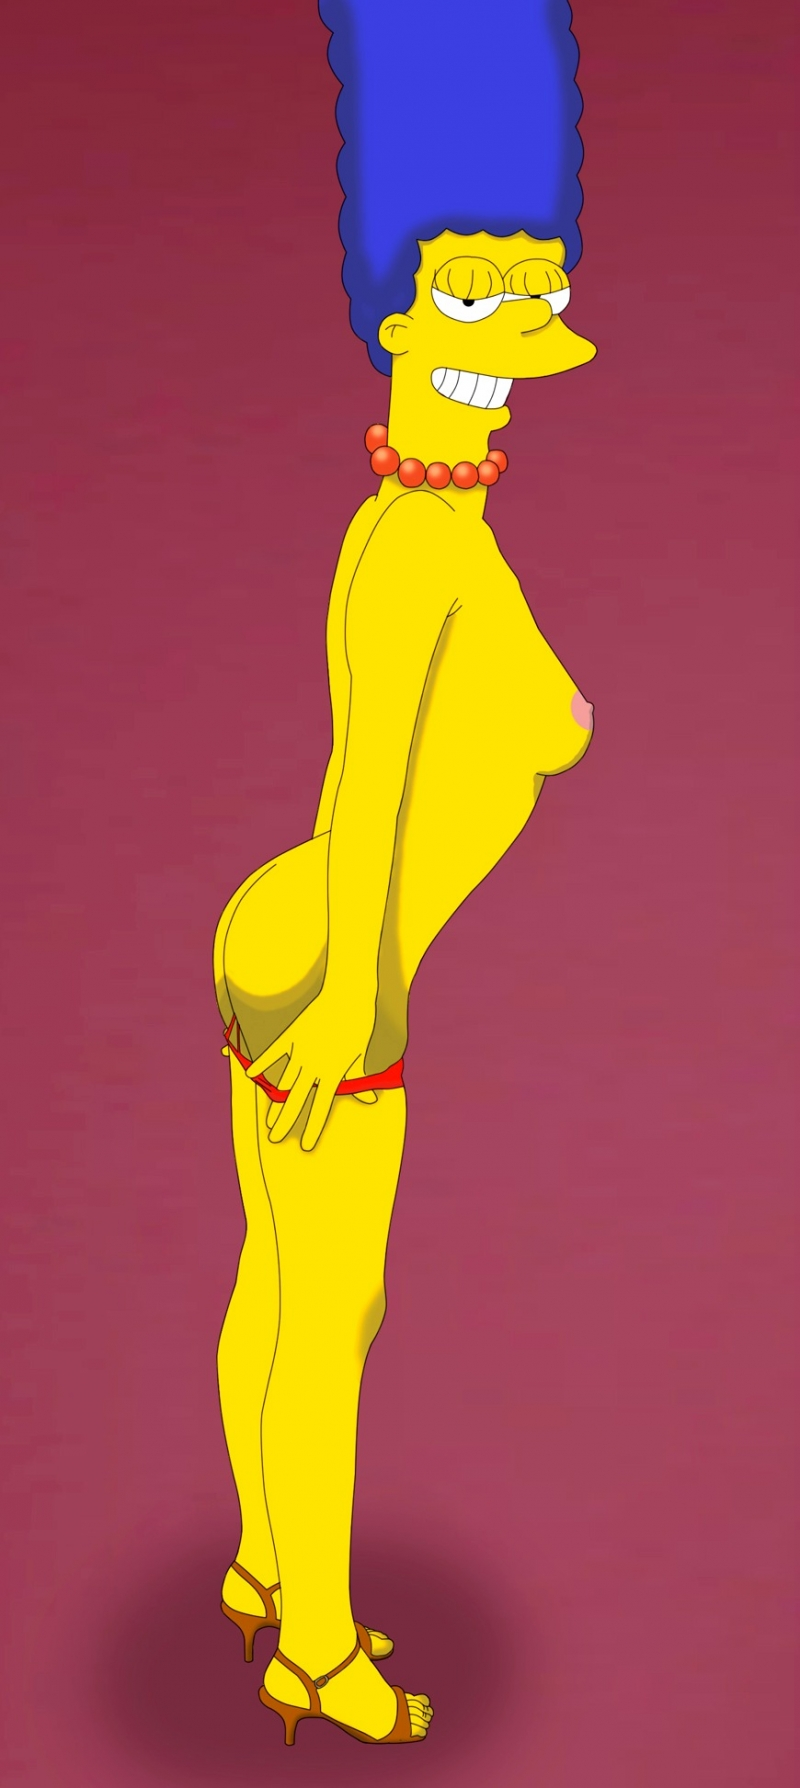 Sexy Nude Simpsons